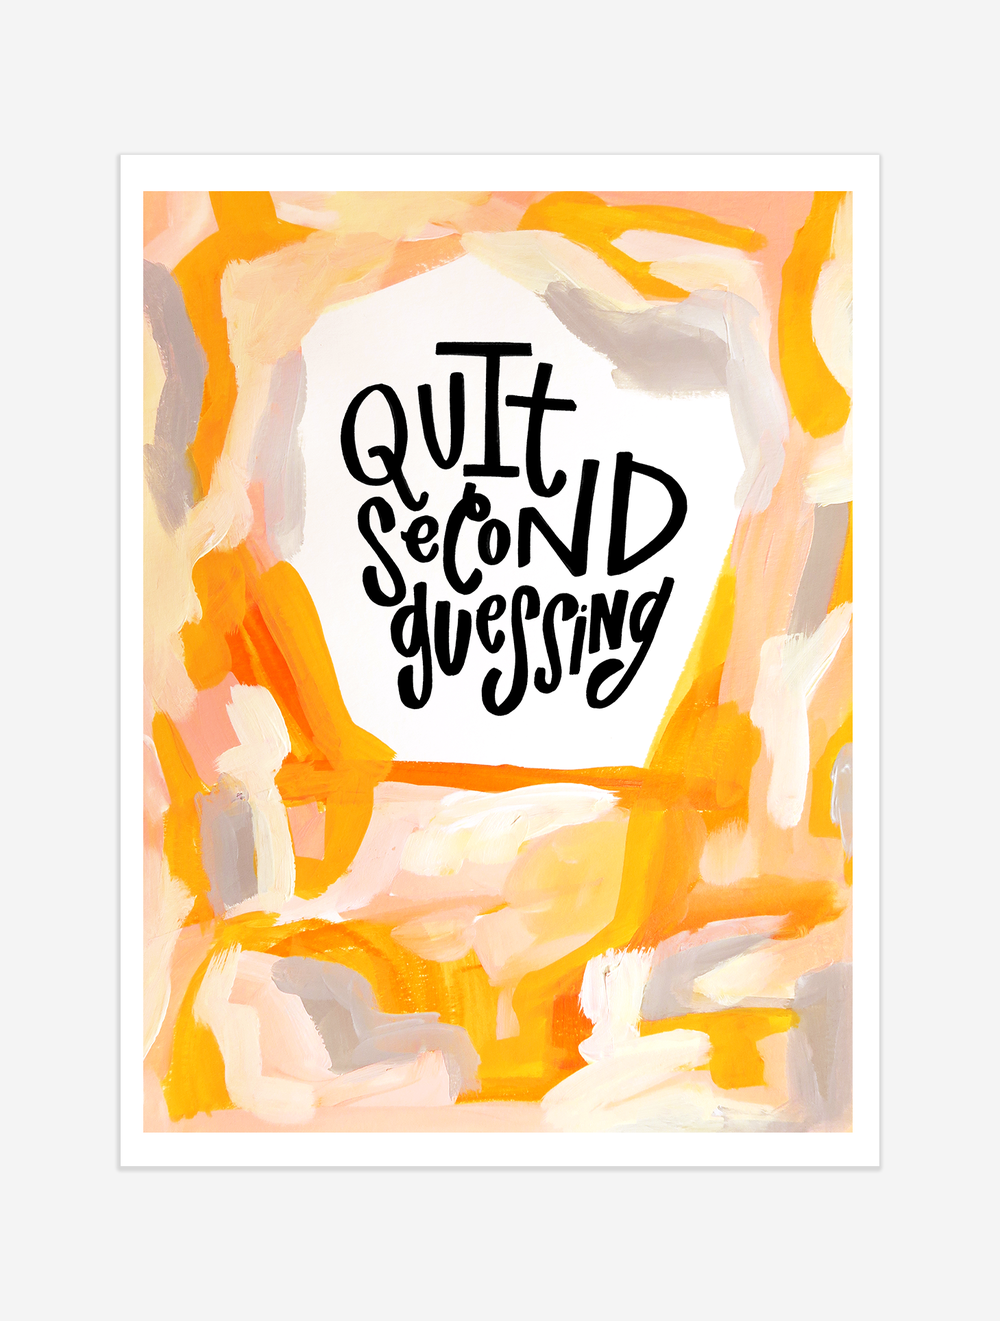 A reminder to trust your gut and blaze your own trail. $25 giclee print available at the Made Vibrant Art Shop.